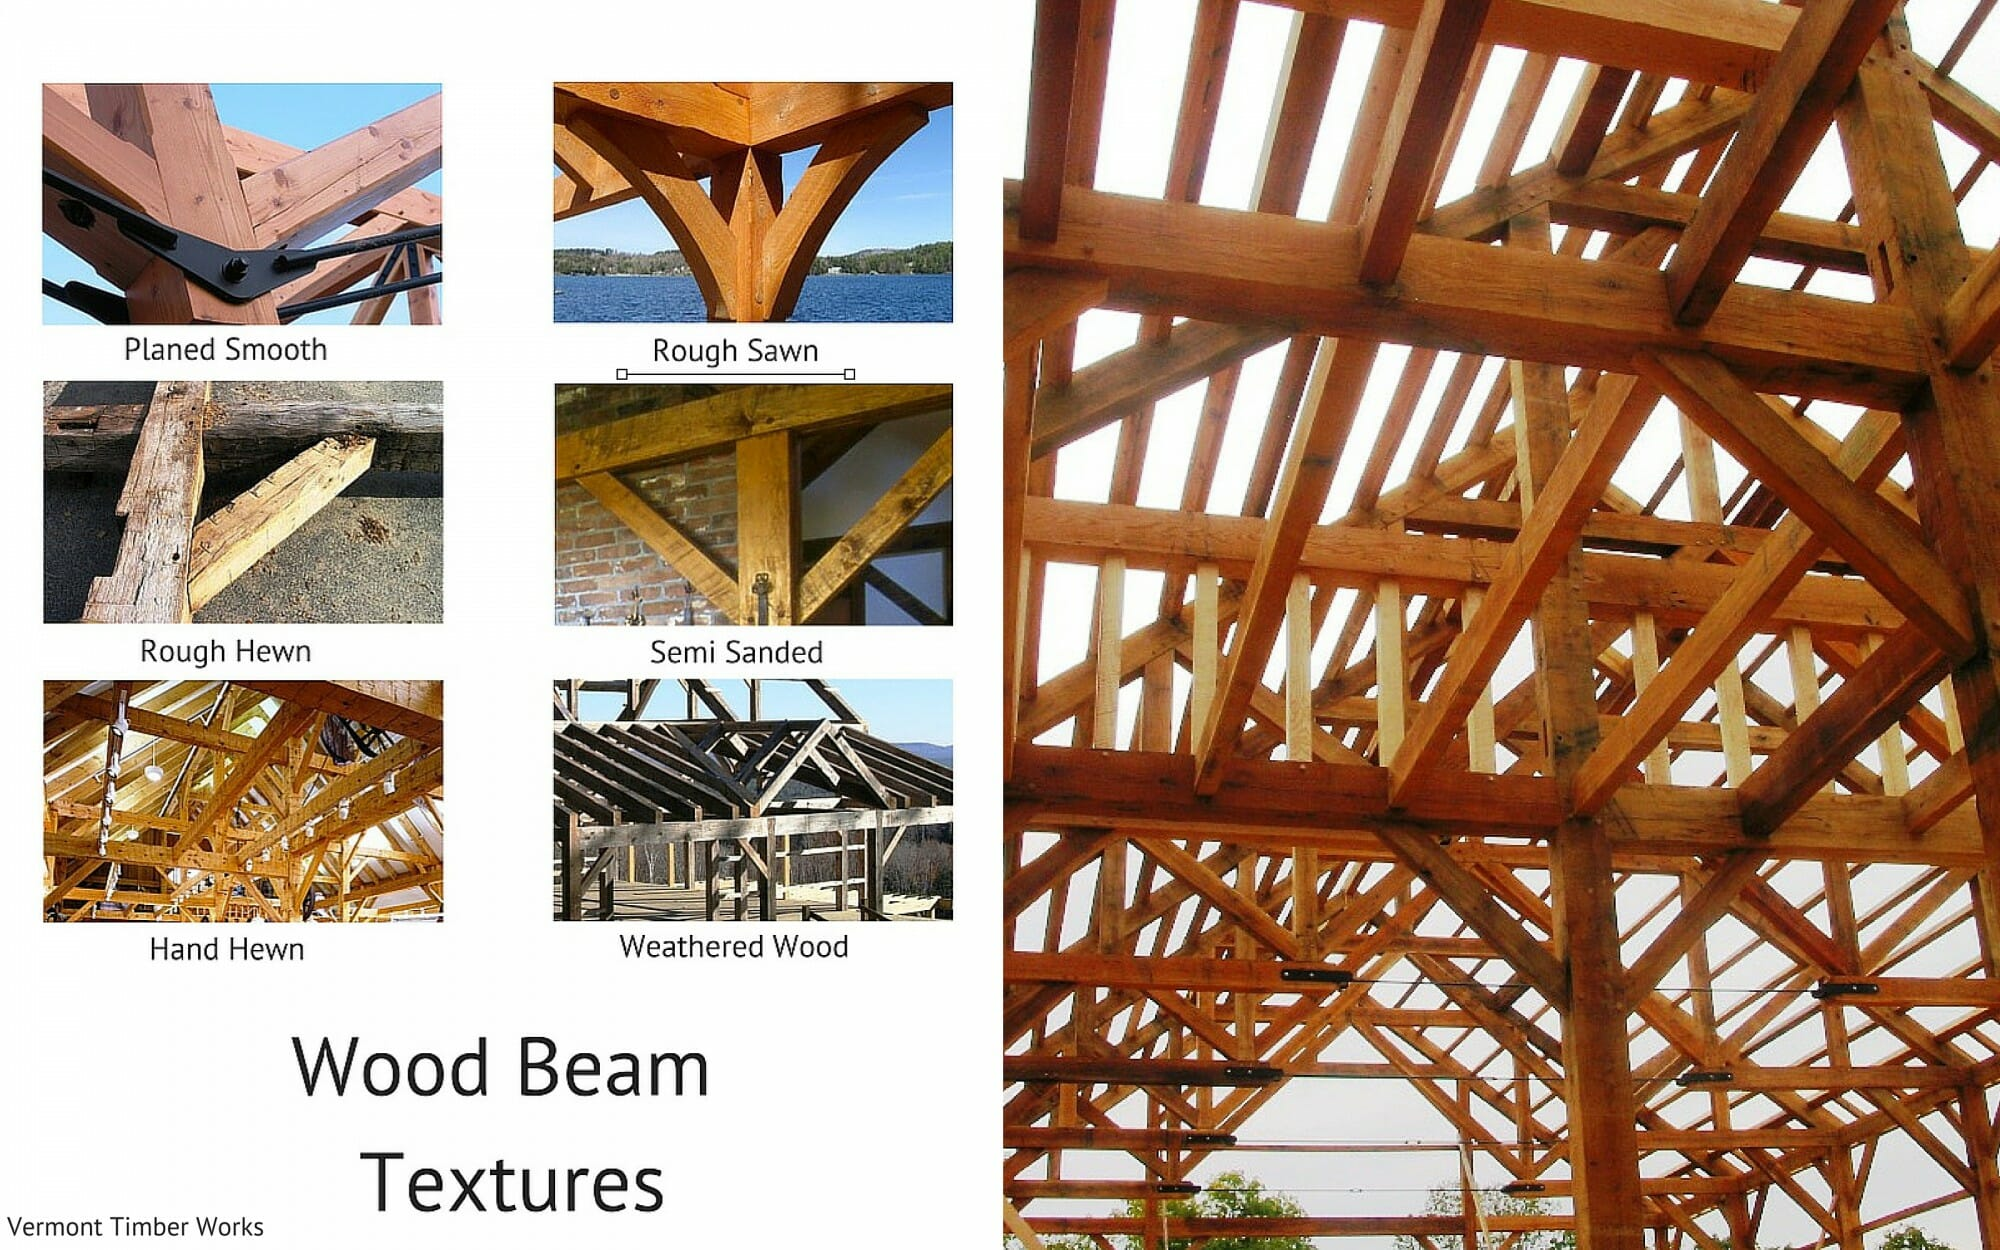 wood beam texture rough sawn